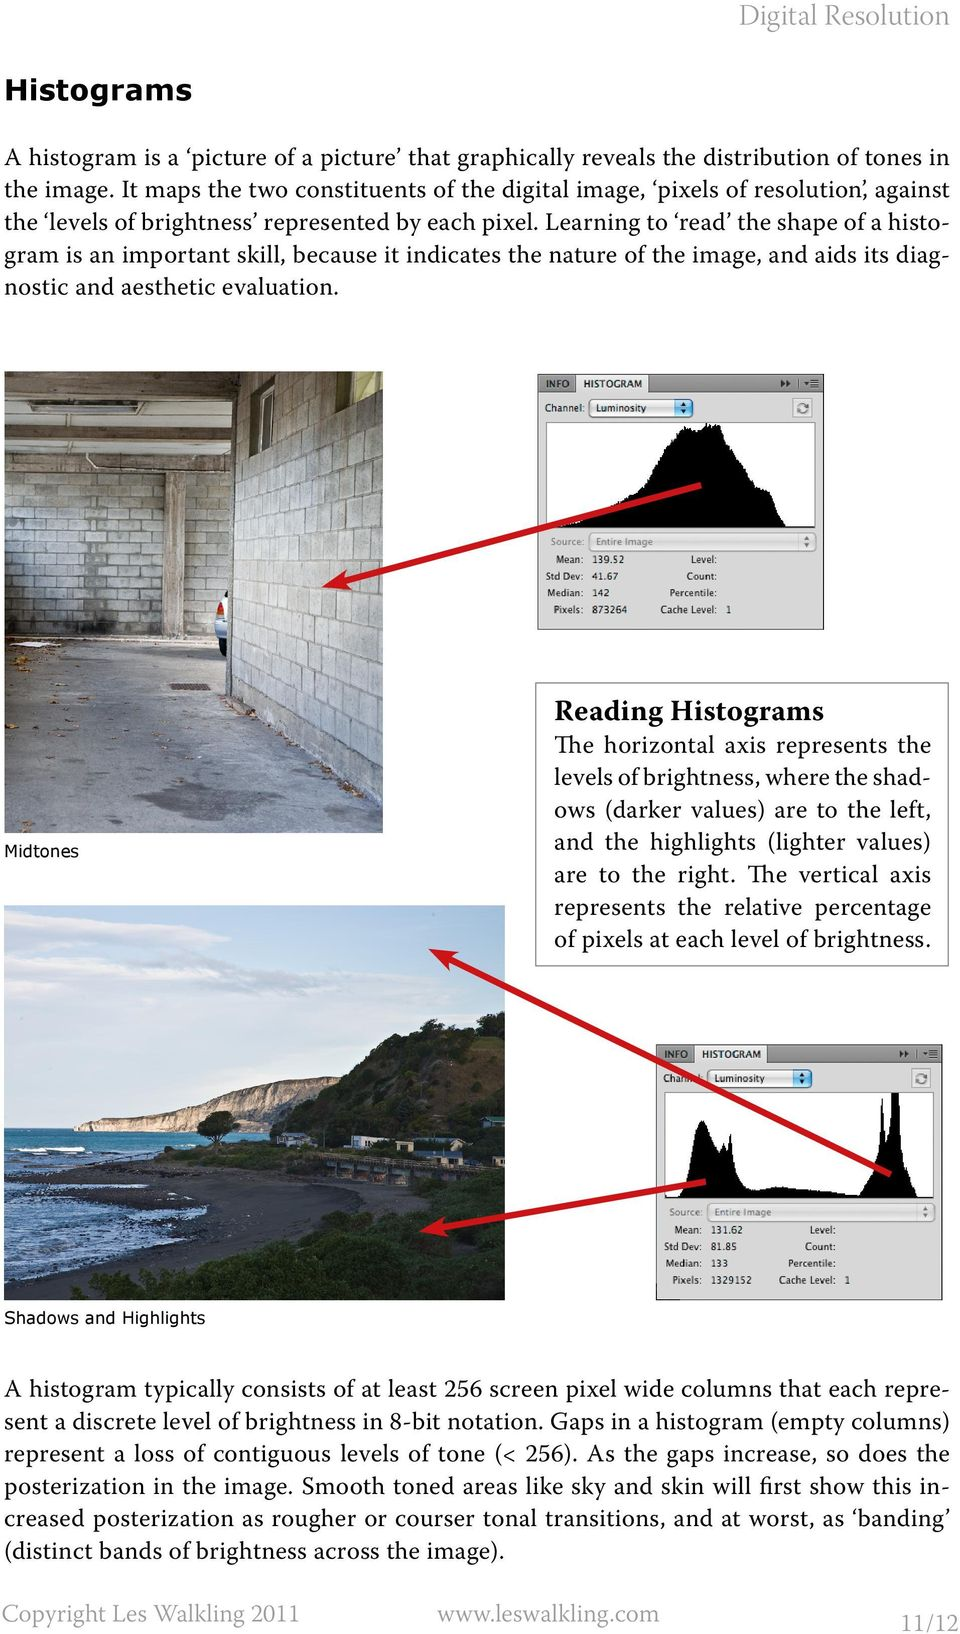 Learning to read the shape of a histogram is an important skill, because it indicates the nature of the image, and aids its diagnostic and aesthetic evaluation.